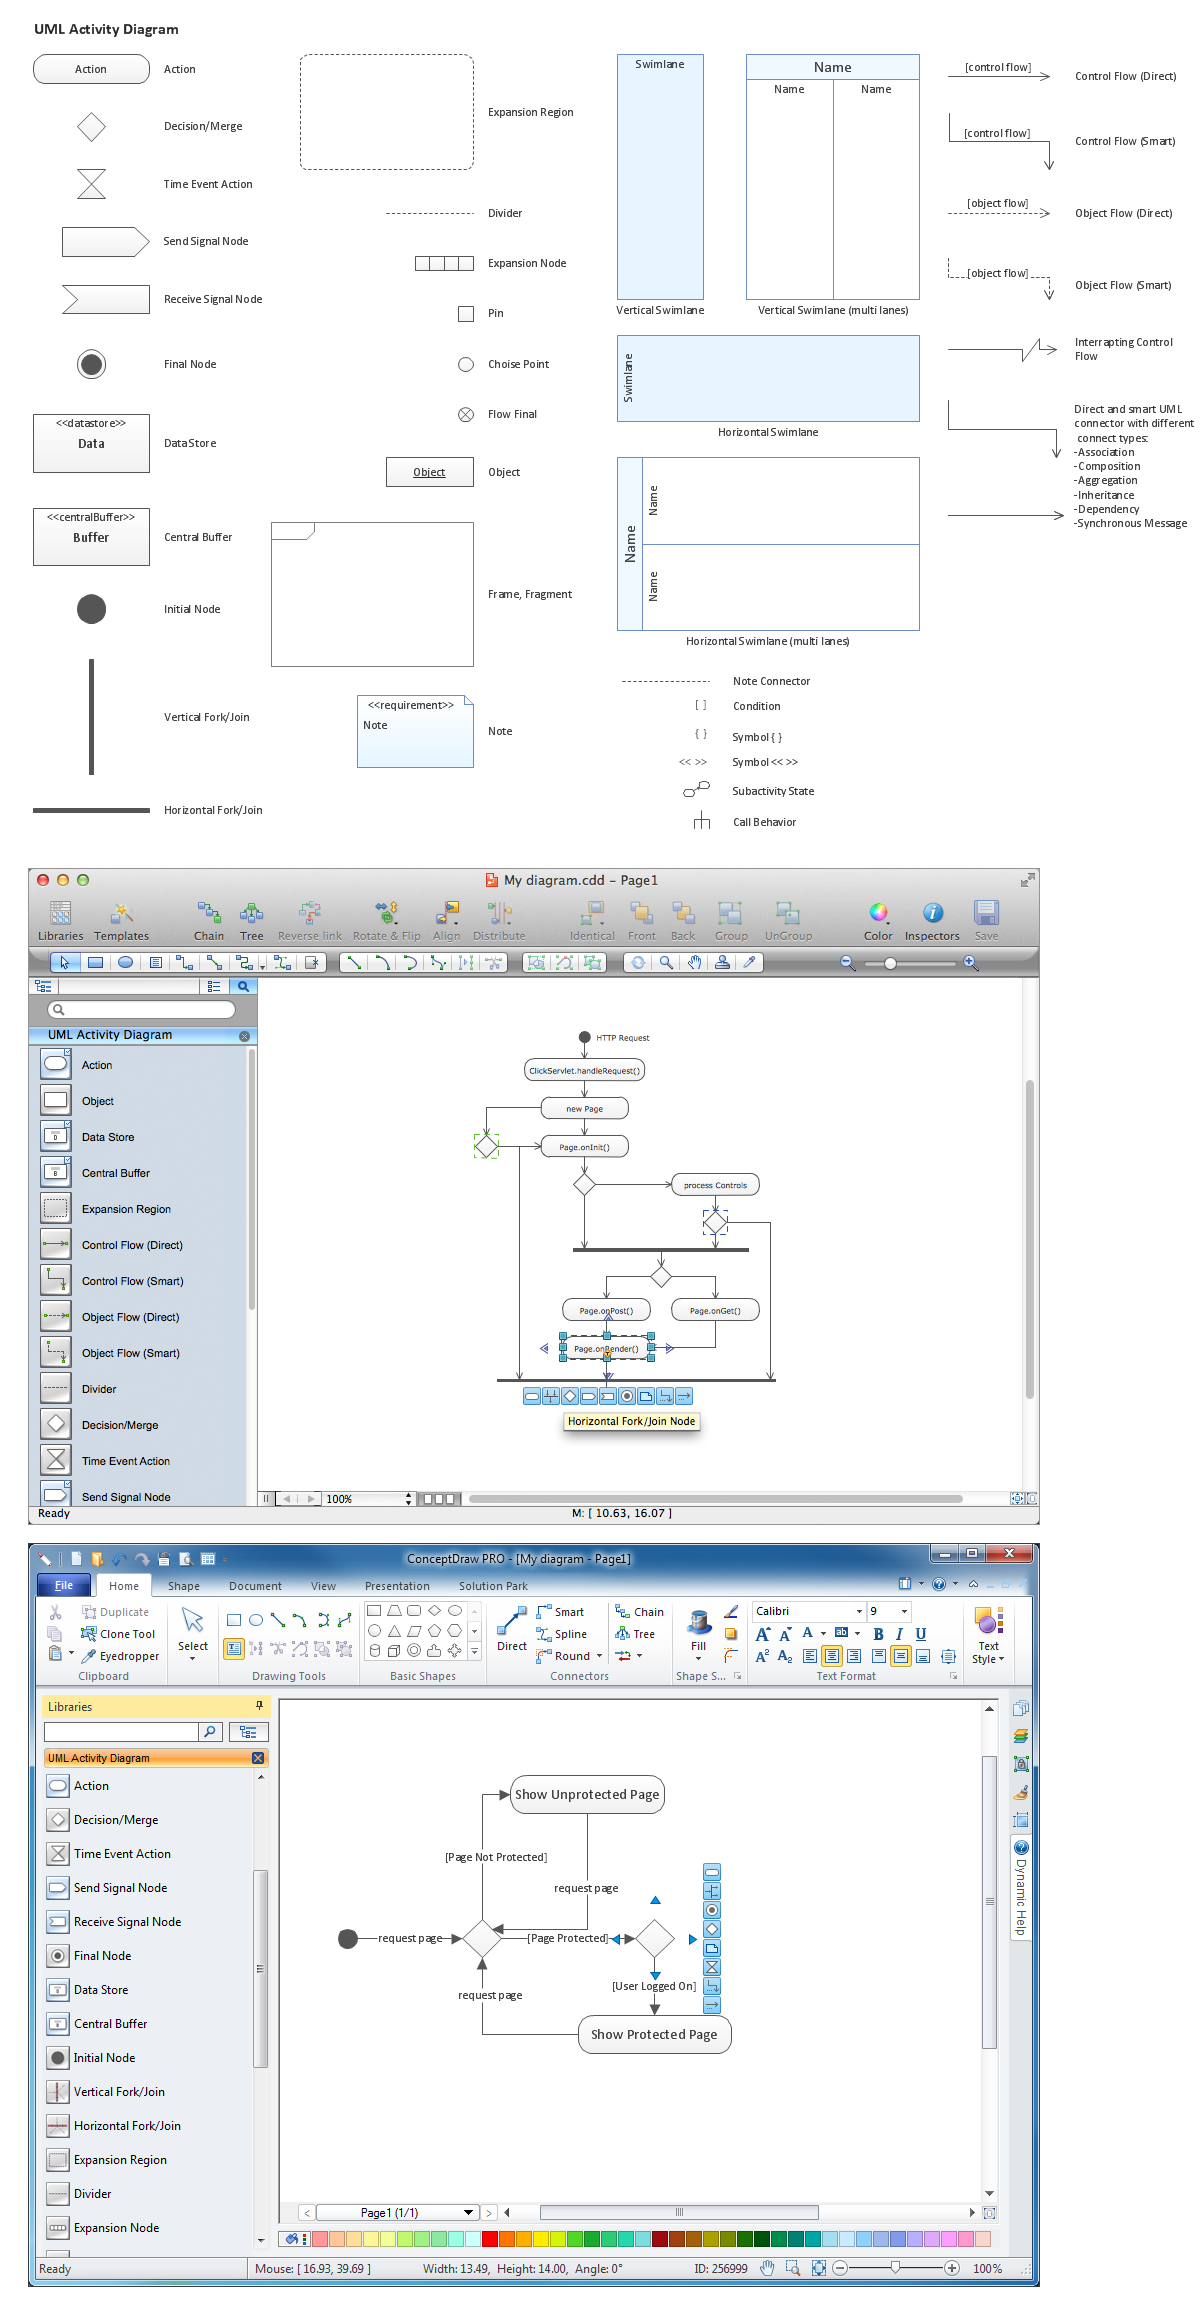 Uml activity diagram design of the diagrams business graphics diagramming software for design uml activity diagrams win mac ccuart